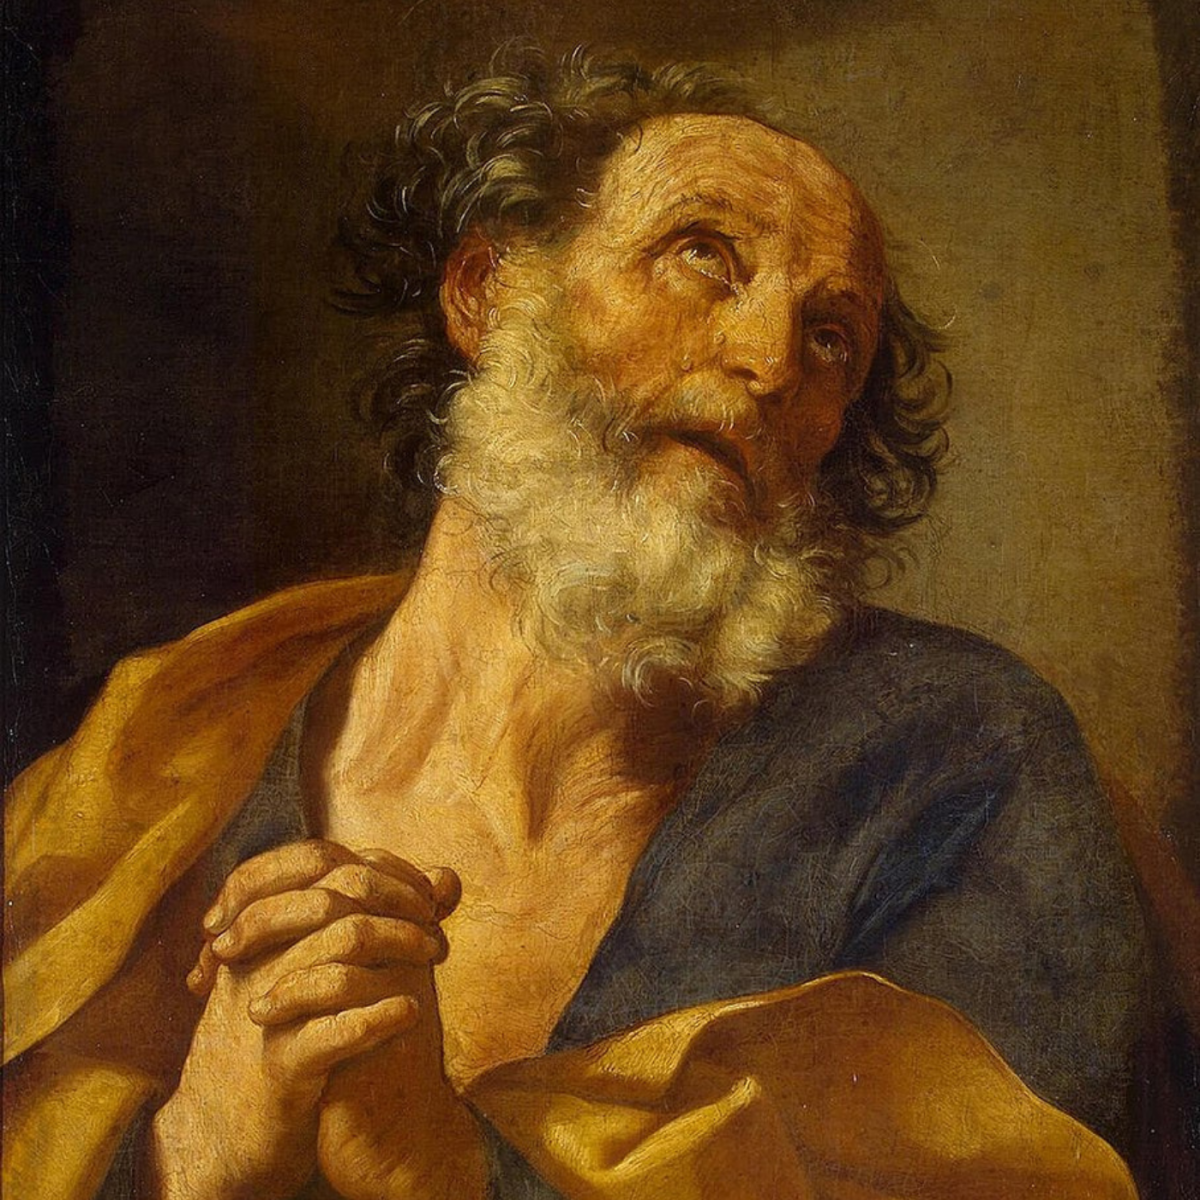 St. Peter was a fisherman.